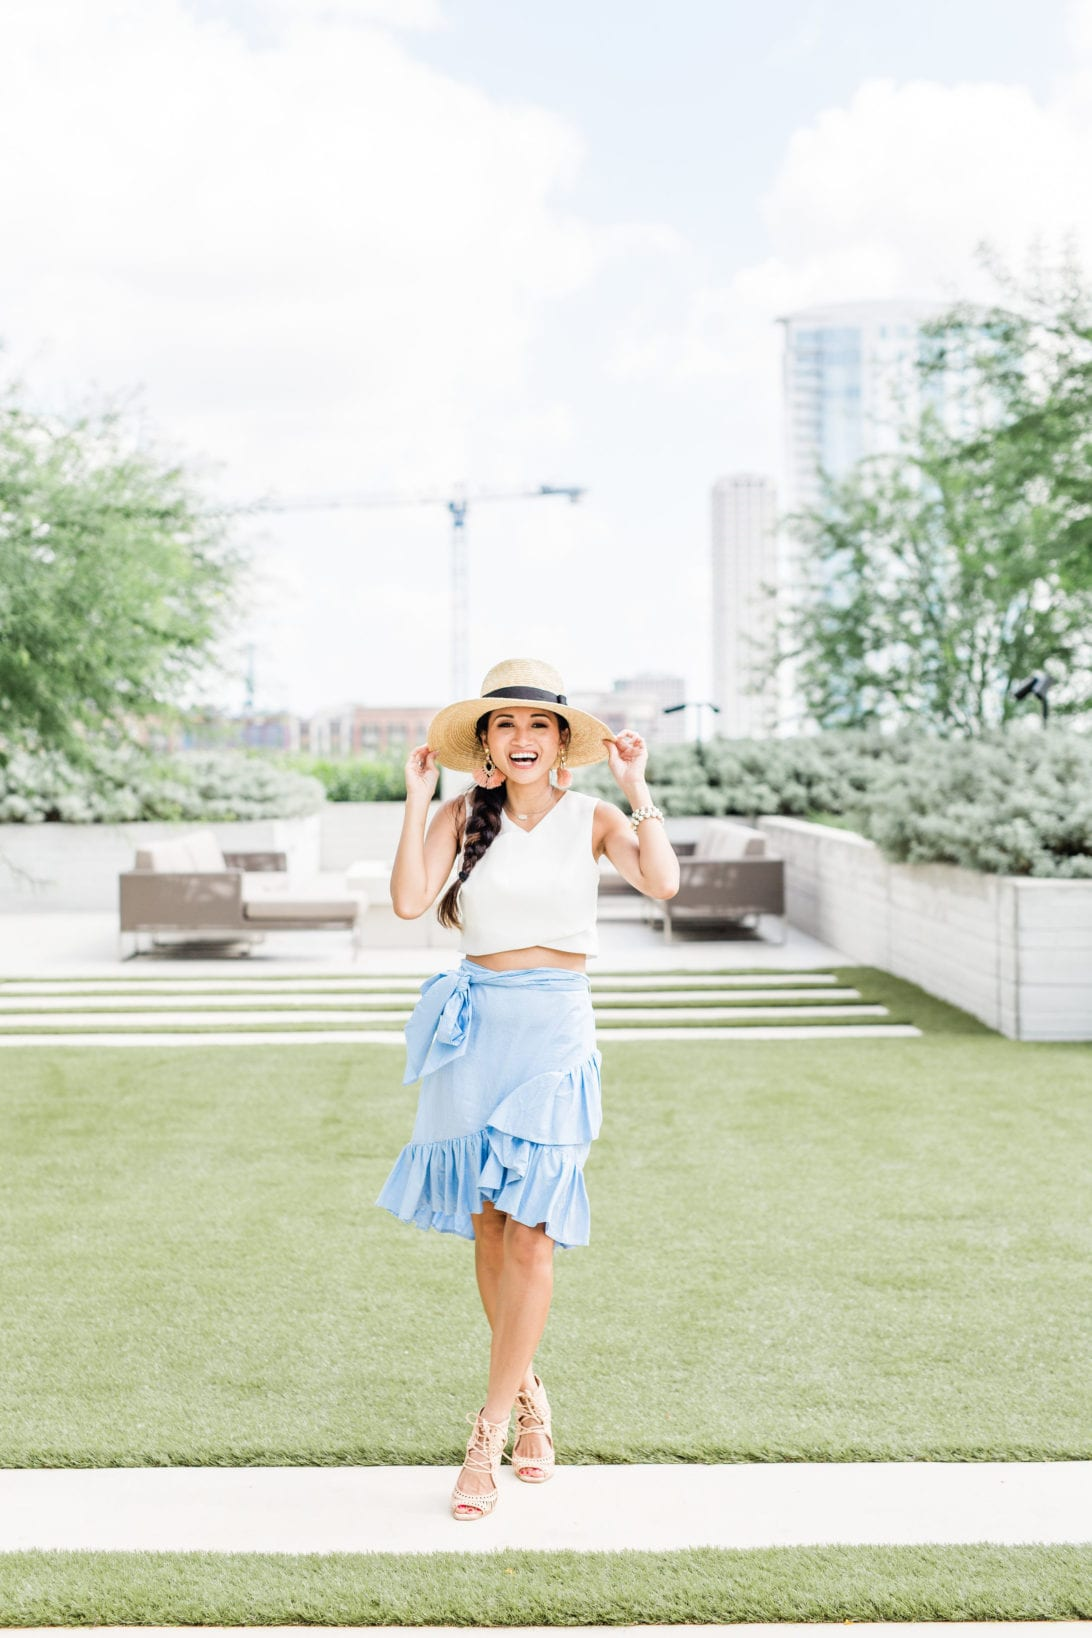 blue ruffle skirt, chic wish, straw hat, Jeffrey Campbell wedges, #dawnpdarnell, #summerstyle #houstonblogger, summer entertaining, summer party, soiree, how to throw a summer soiree, tips to throwing a summer soiree, outdoor entertaining, home and gardens, garden party, summer tablescape